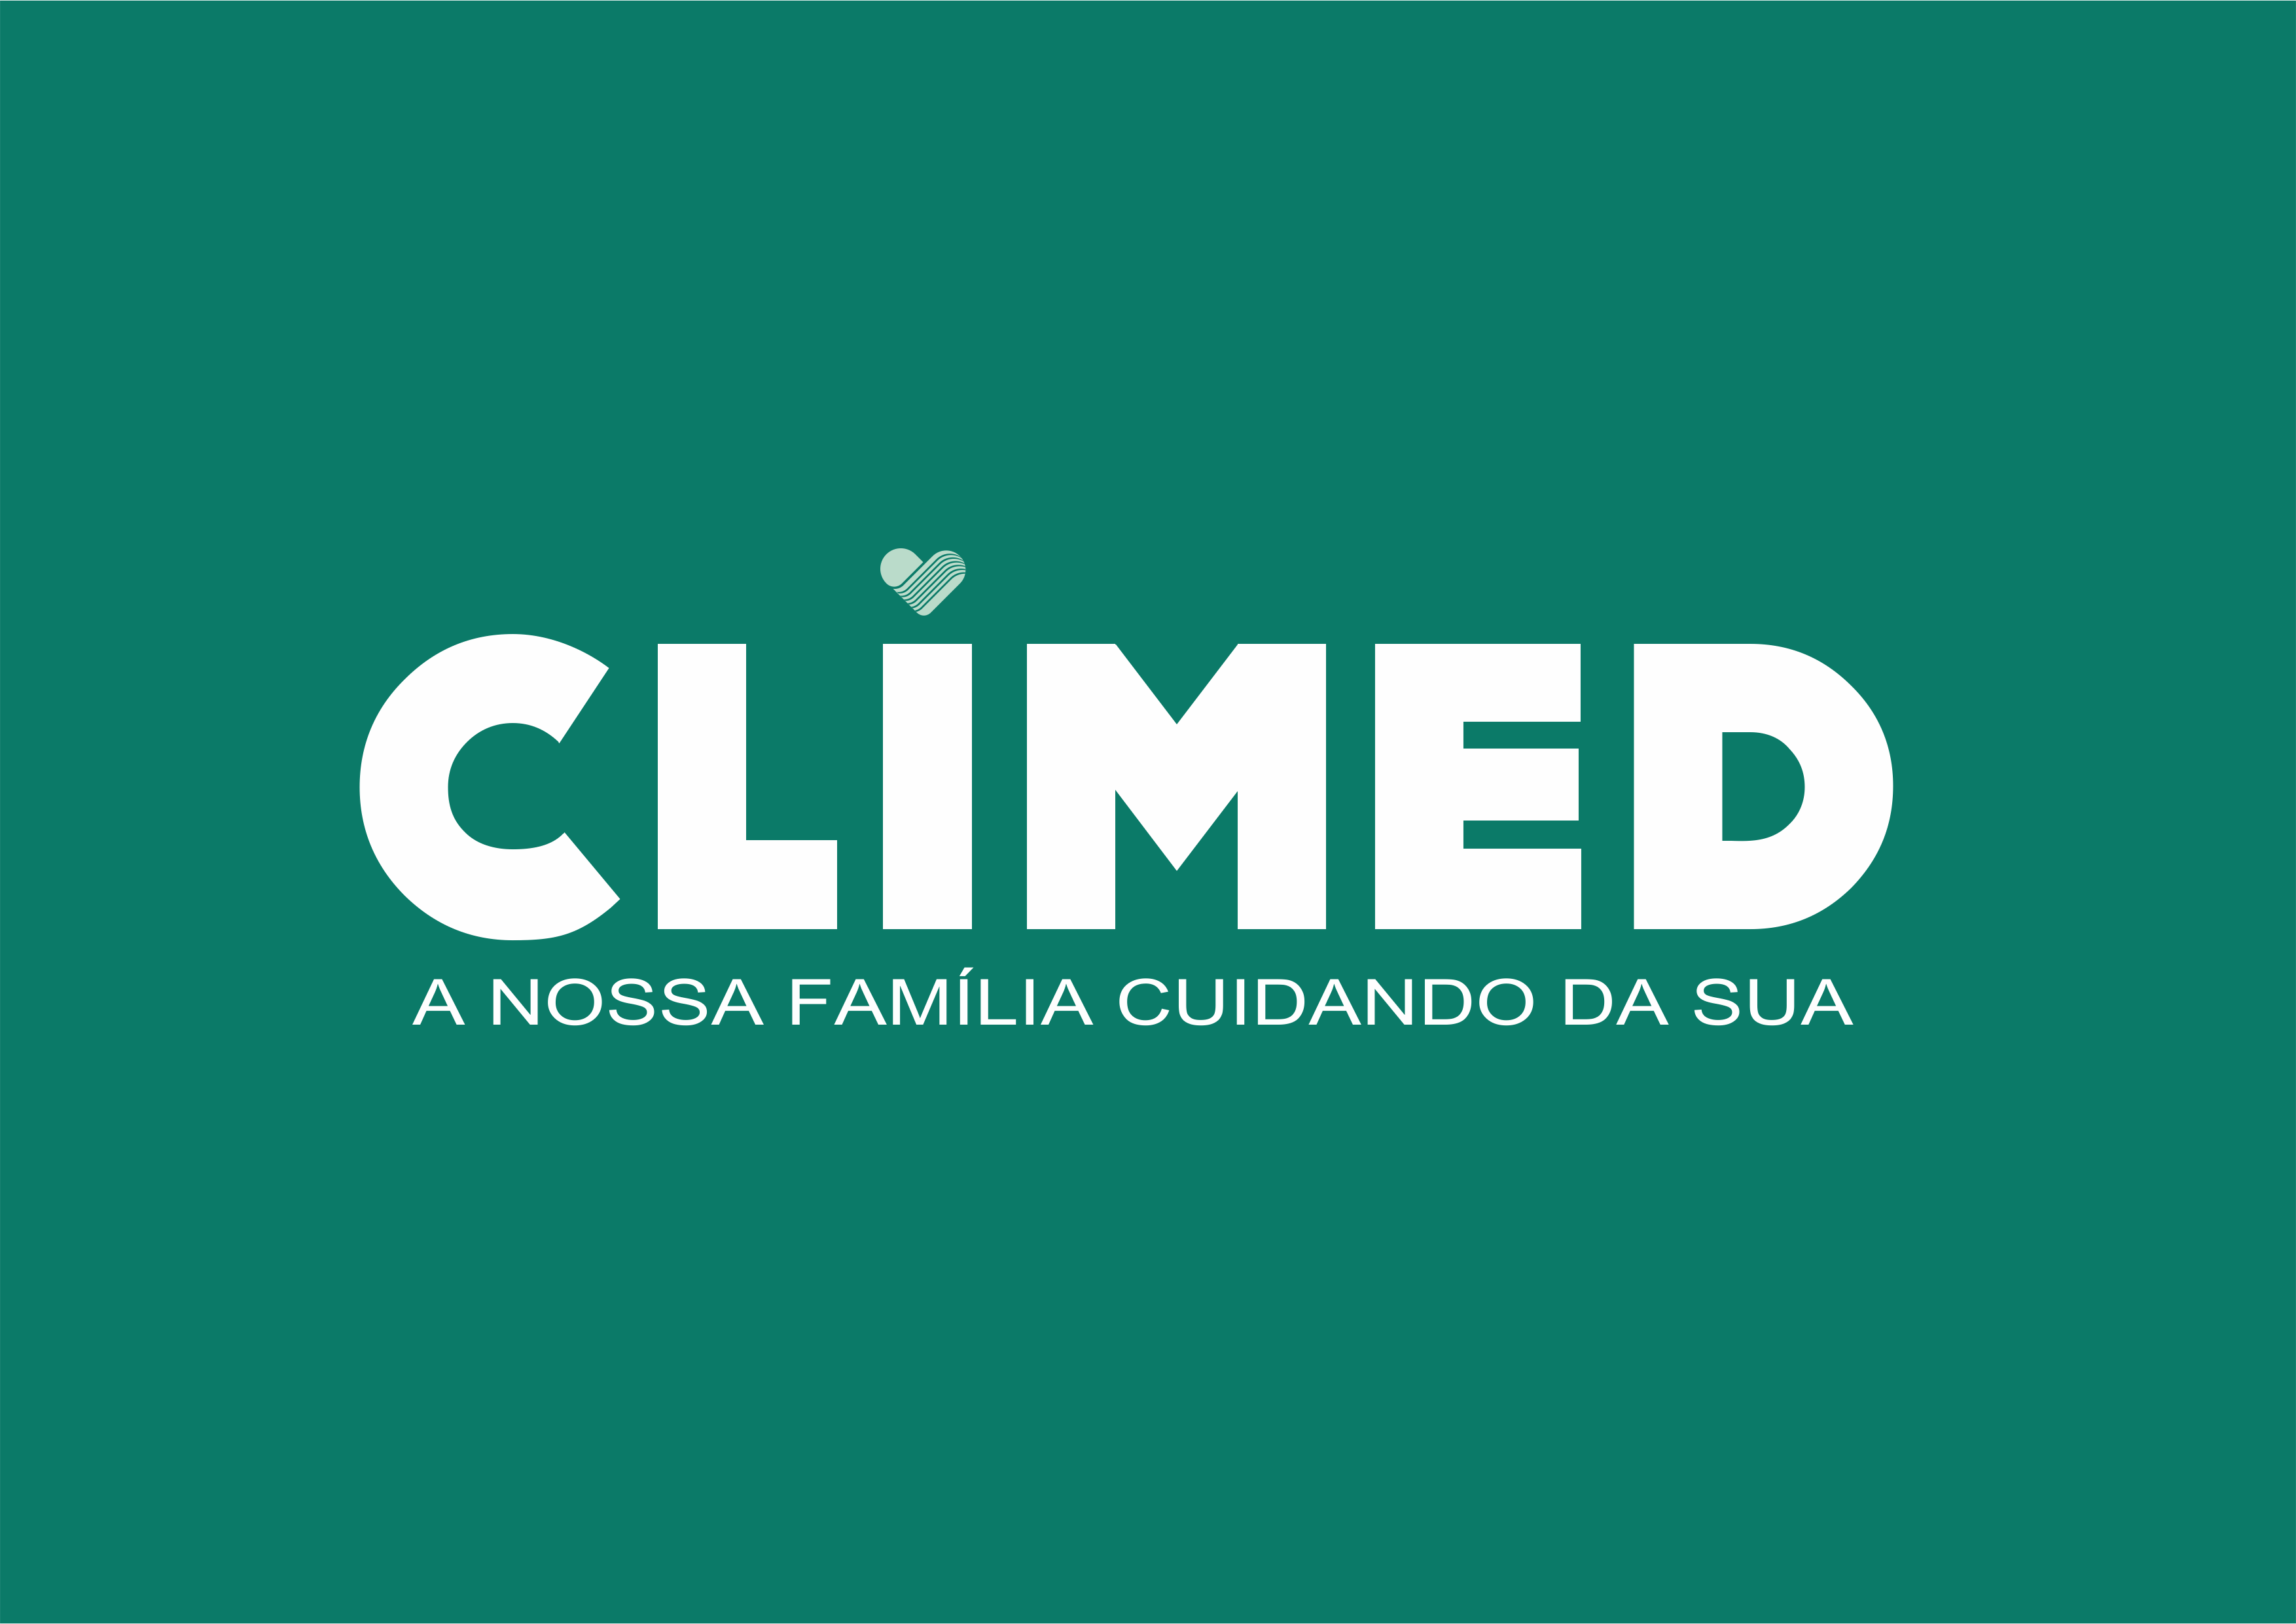 CLIMED 1